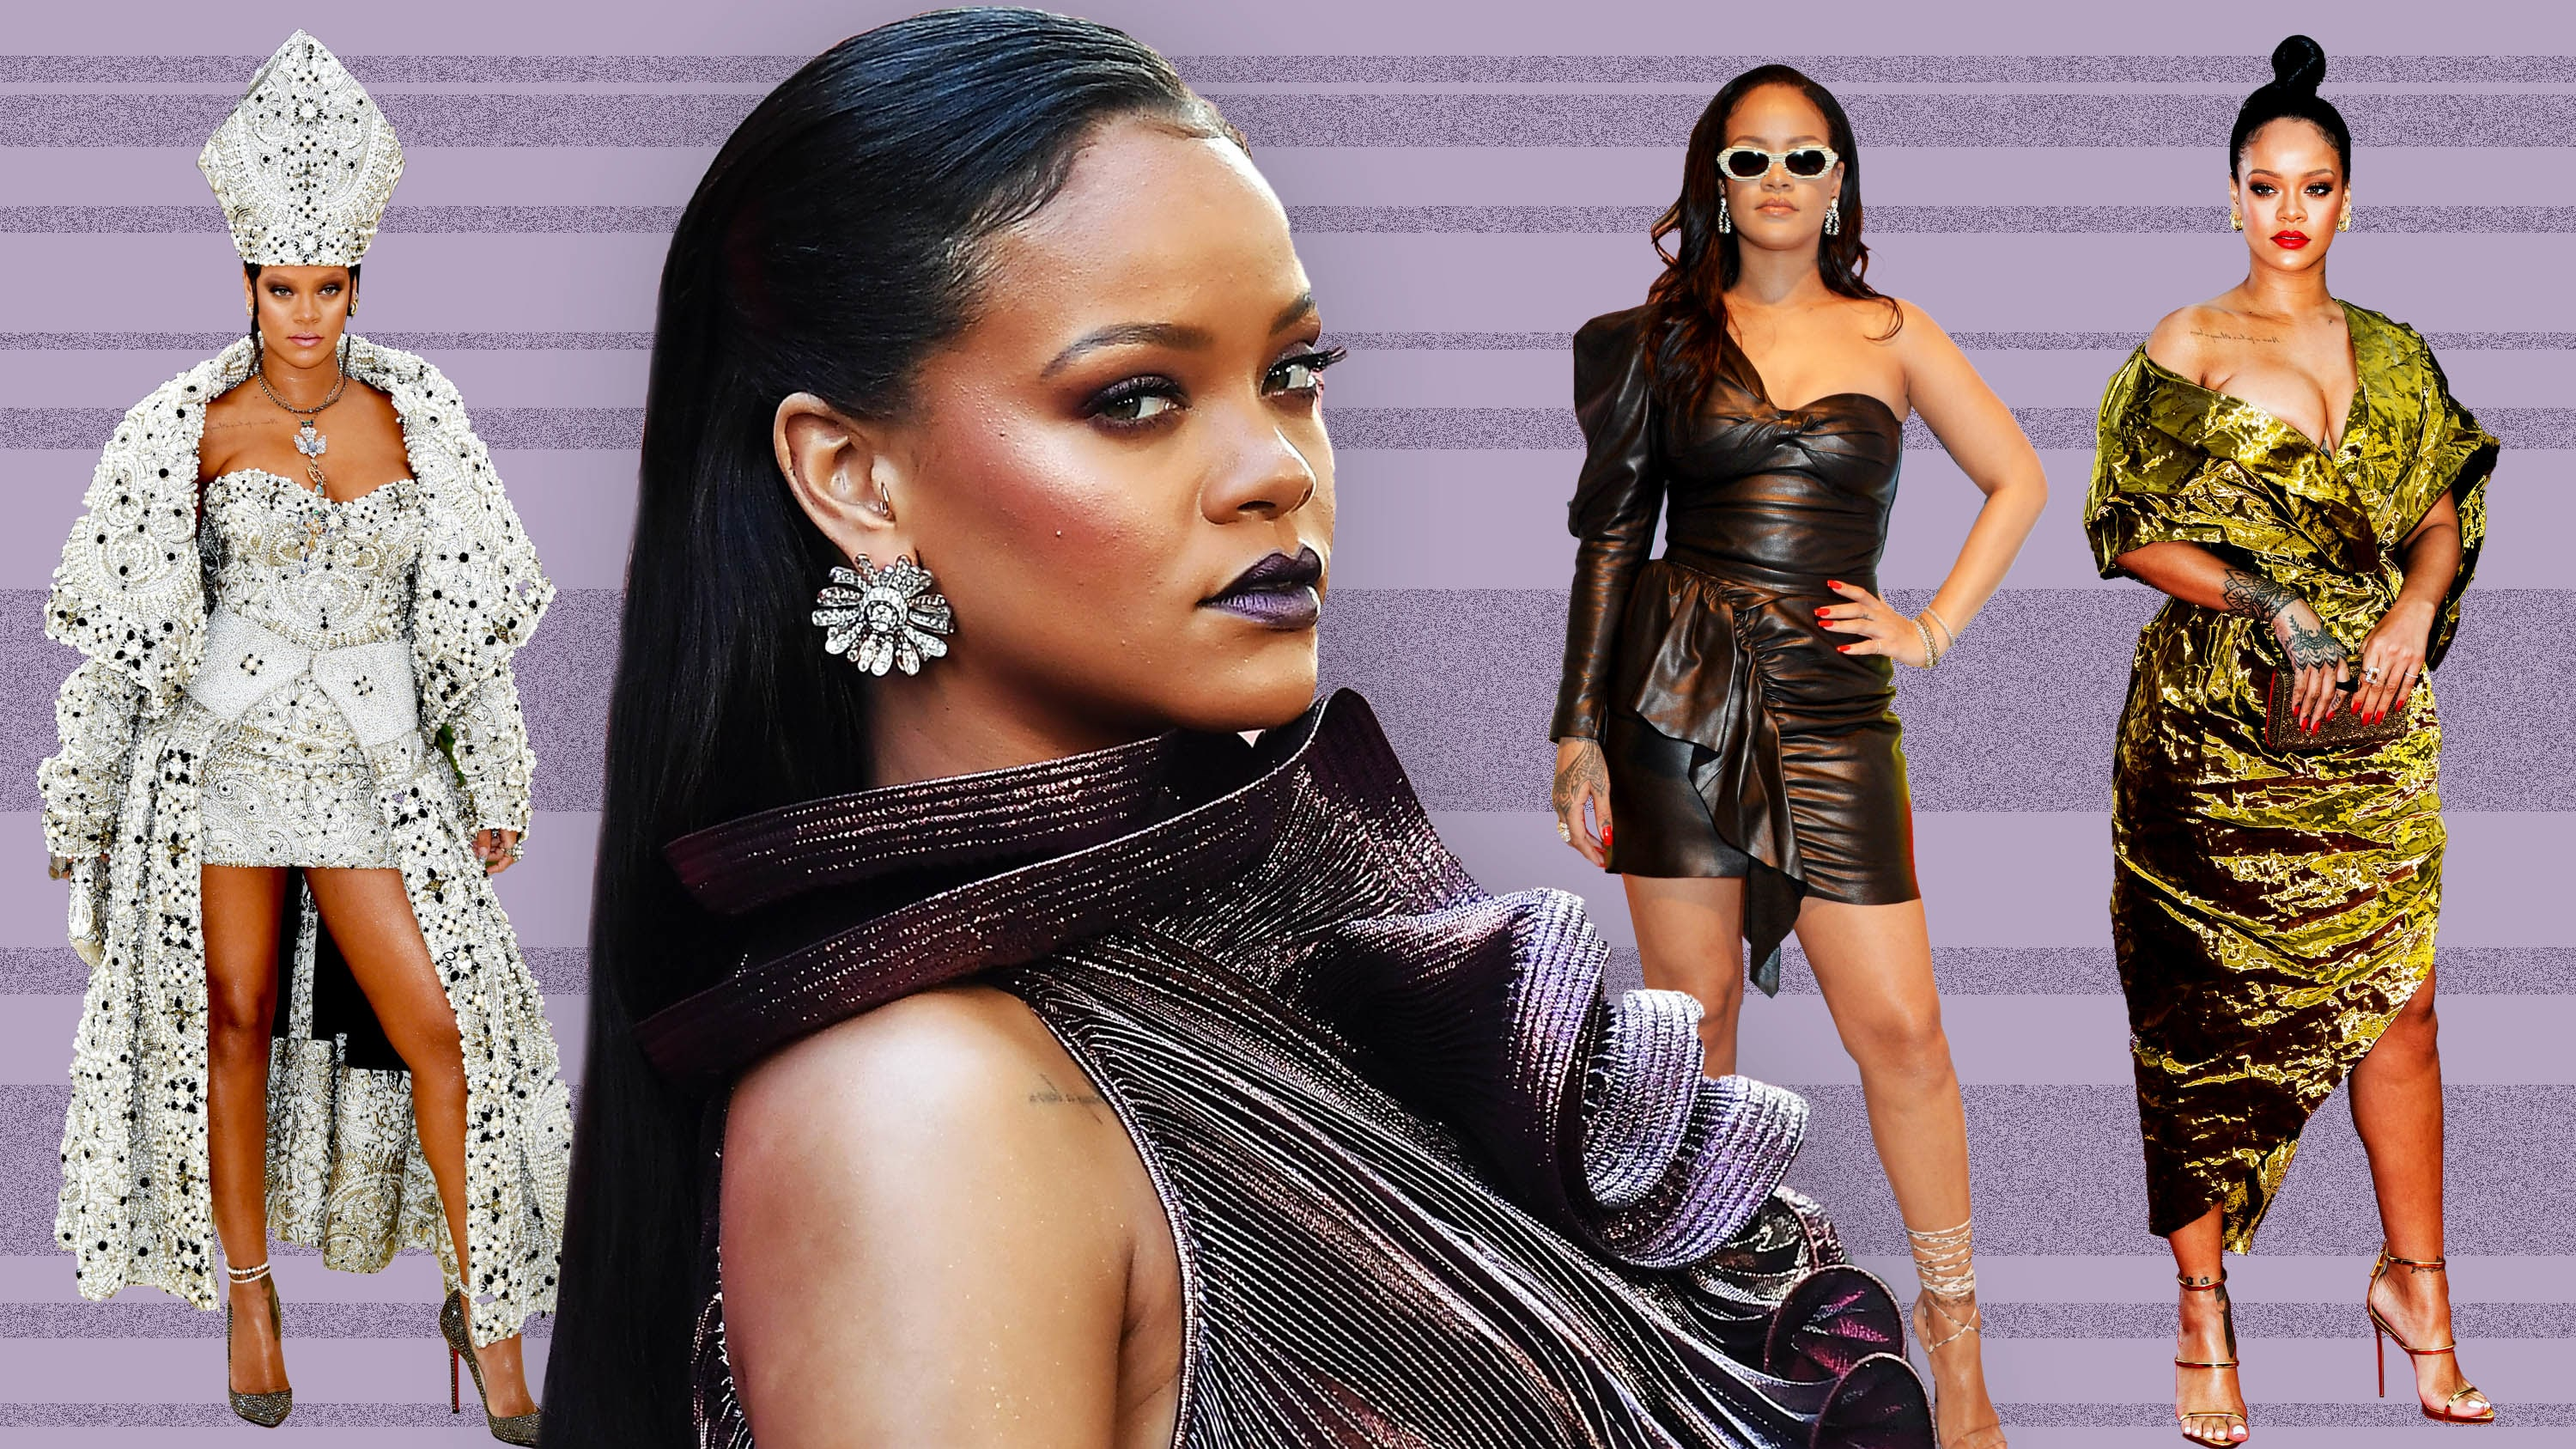 Rihanna Wants You To Buy Her Clothes, and Her Message